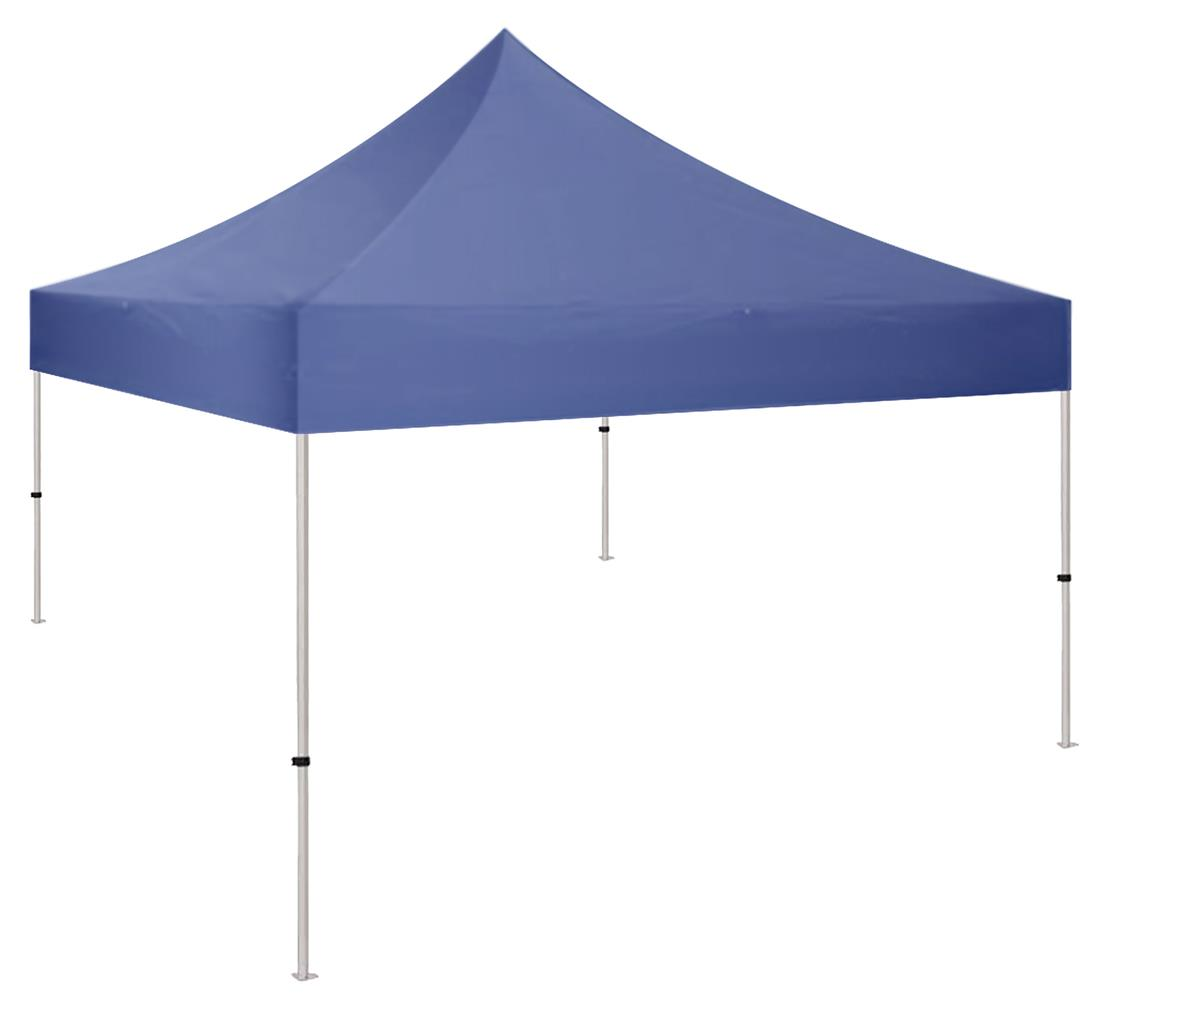 10x10 pop up canopy tent with height adjustable aluminum frame